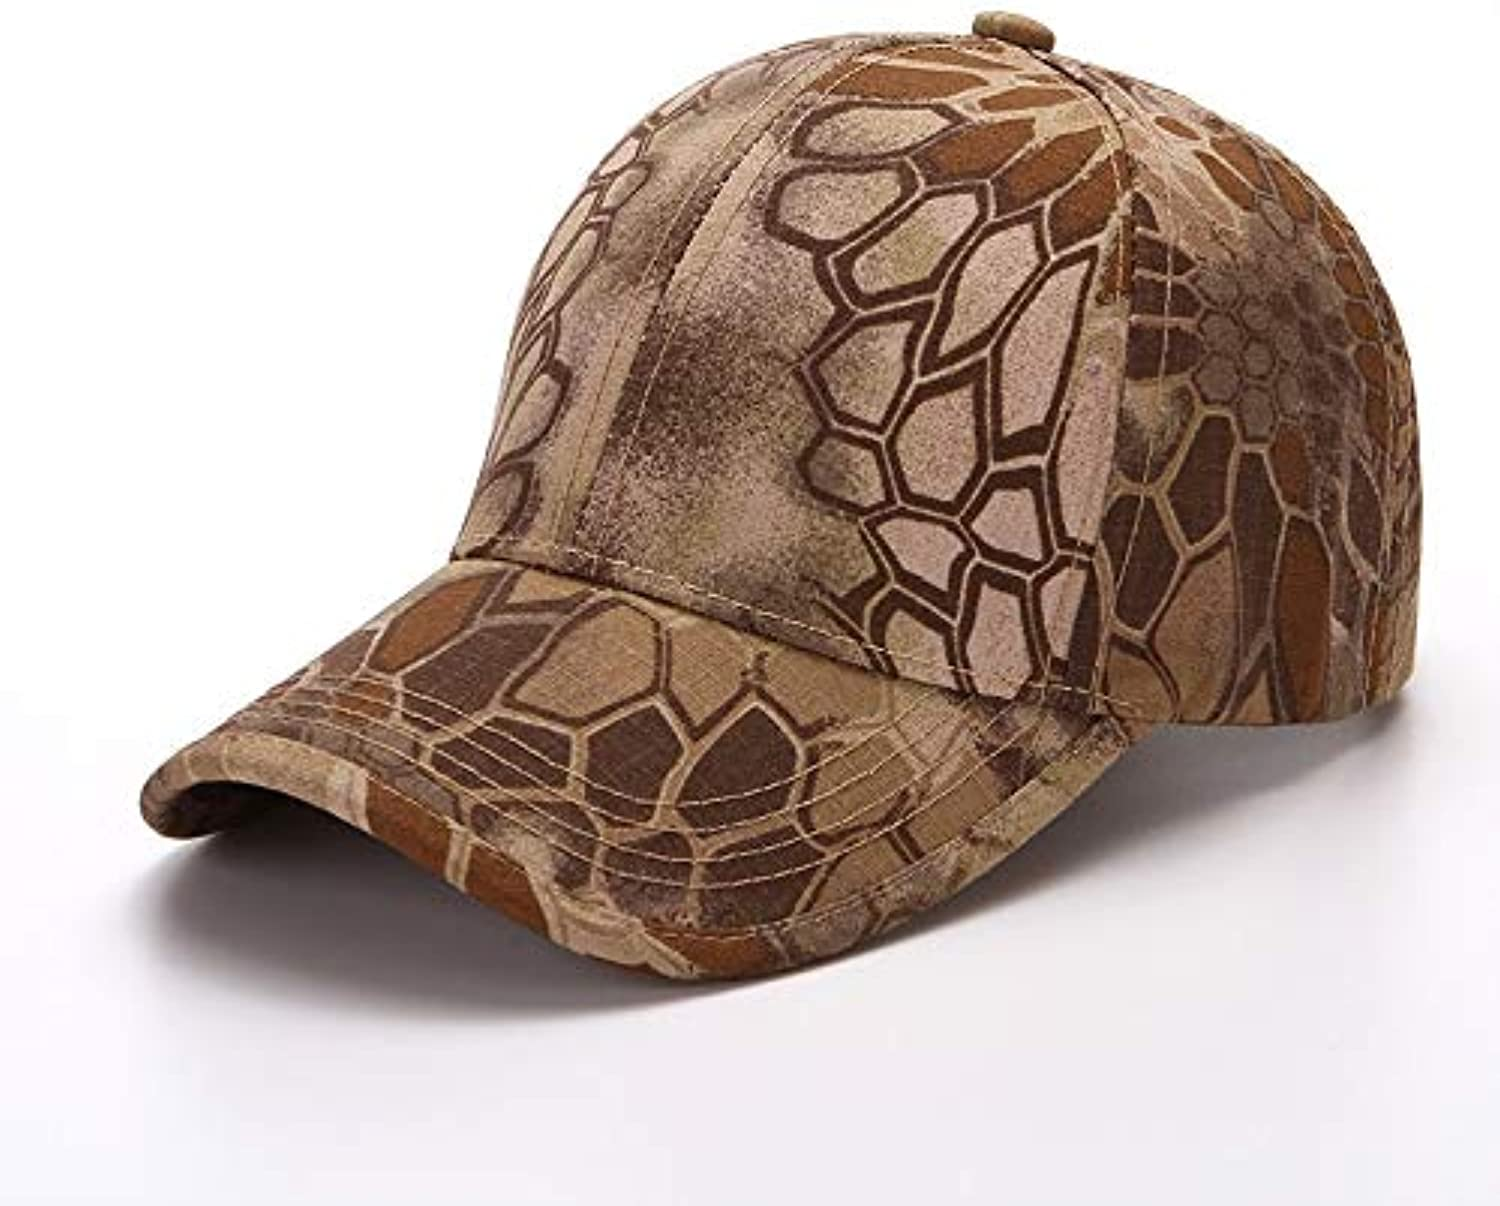 AAMOUISE Baseball Cap Men Women Adjustable Fishing Hunting Camouflage Army Sport Baseball Hat Camo Cap Brown Camouflage Tactical Baseball